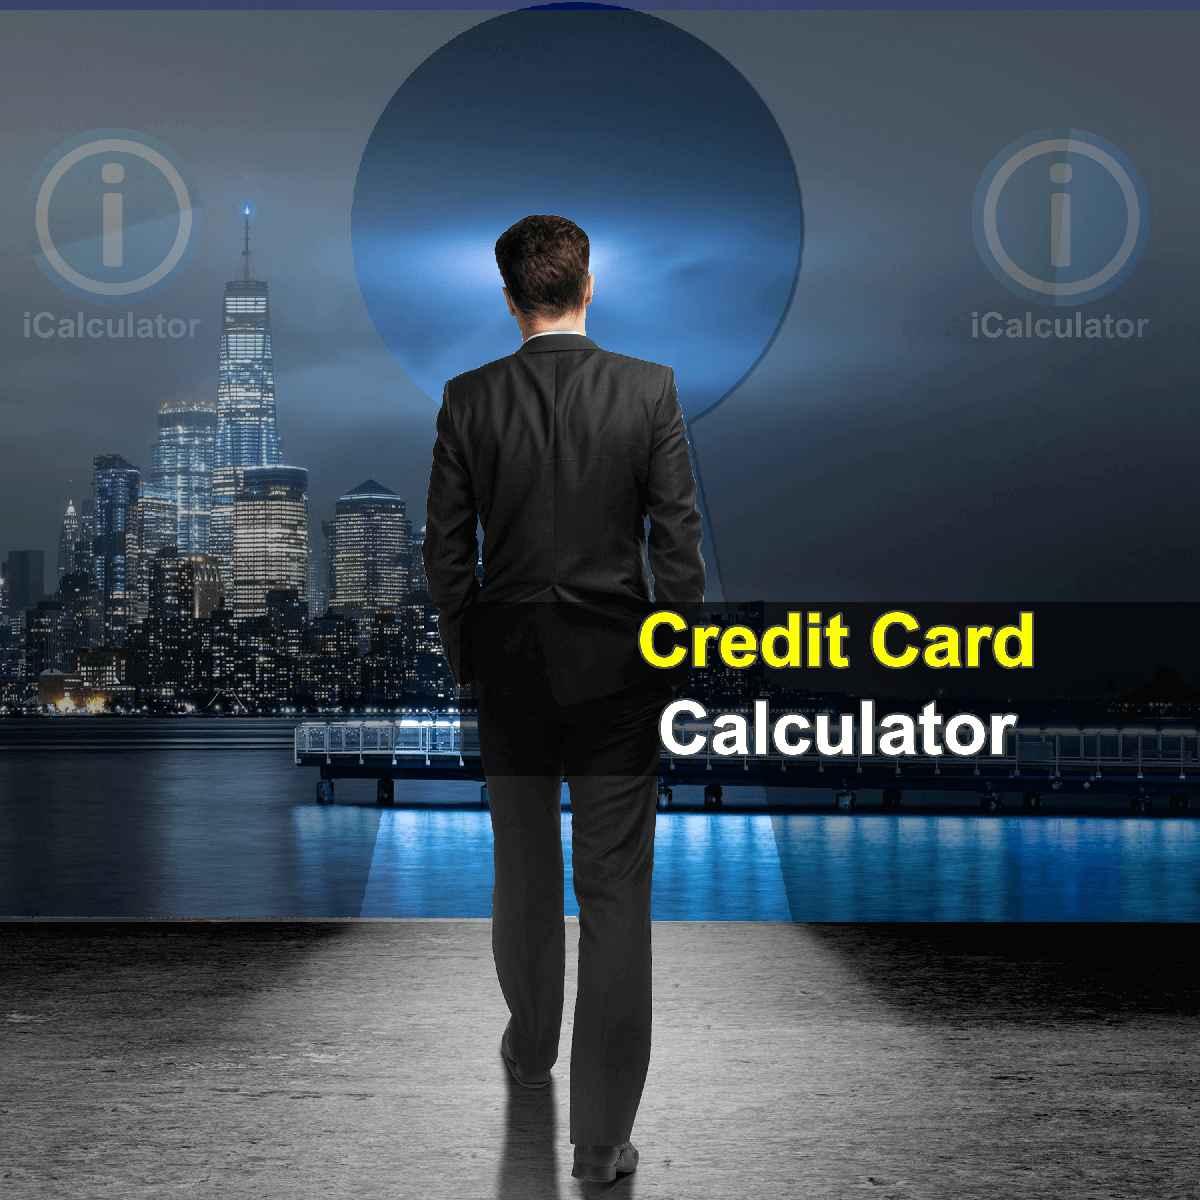 Credit Card Minimum Payment Calculator. This image provides details of how to calculate Credit Card Minimum Payments using a calculator and notepad. By using the credit card payment formula, the Credit Card Minimum Payment Calculator provides a true calculation of the minimum monthly repayments on a credit card and the total amount that will be repaid in interest.